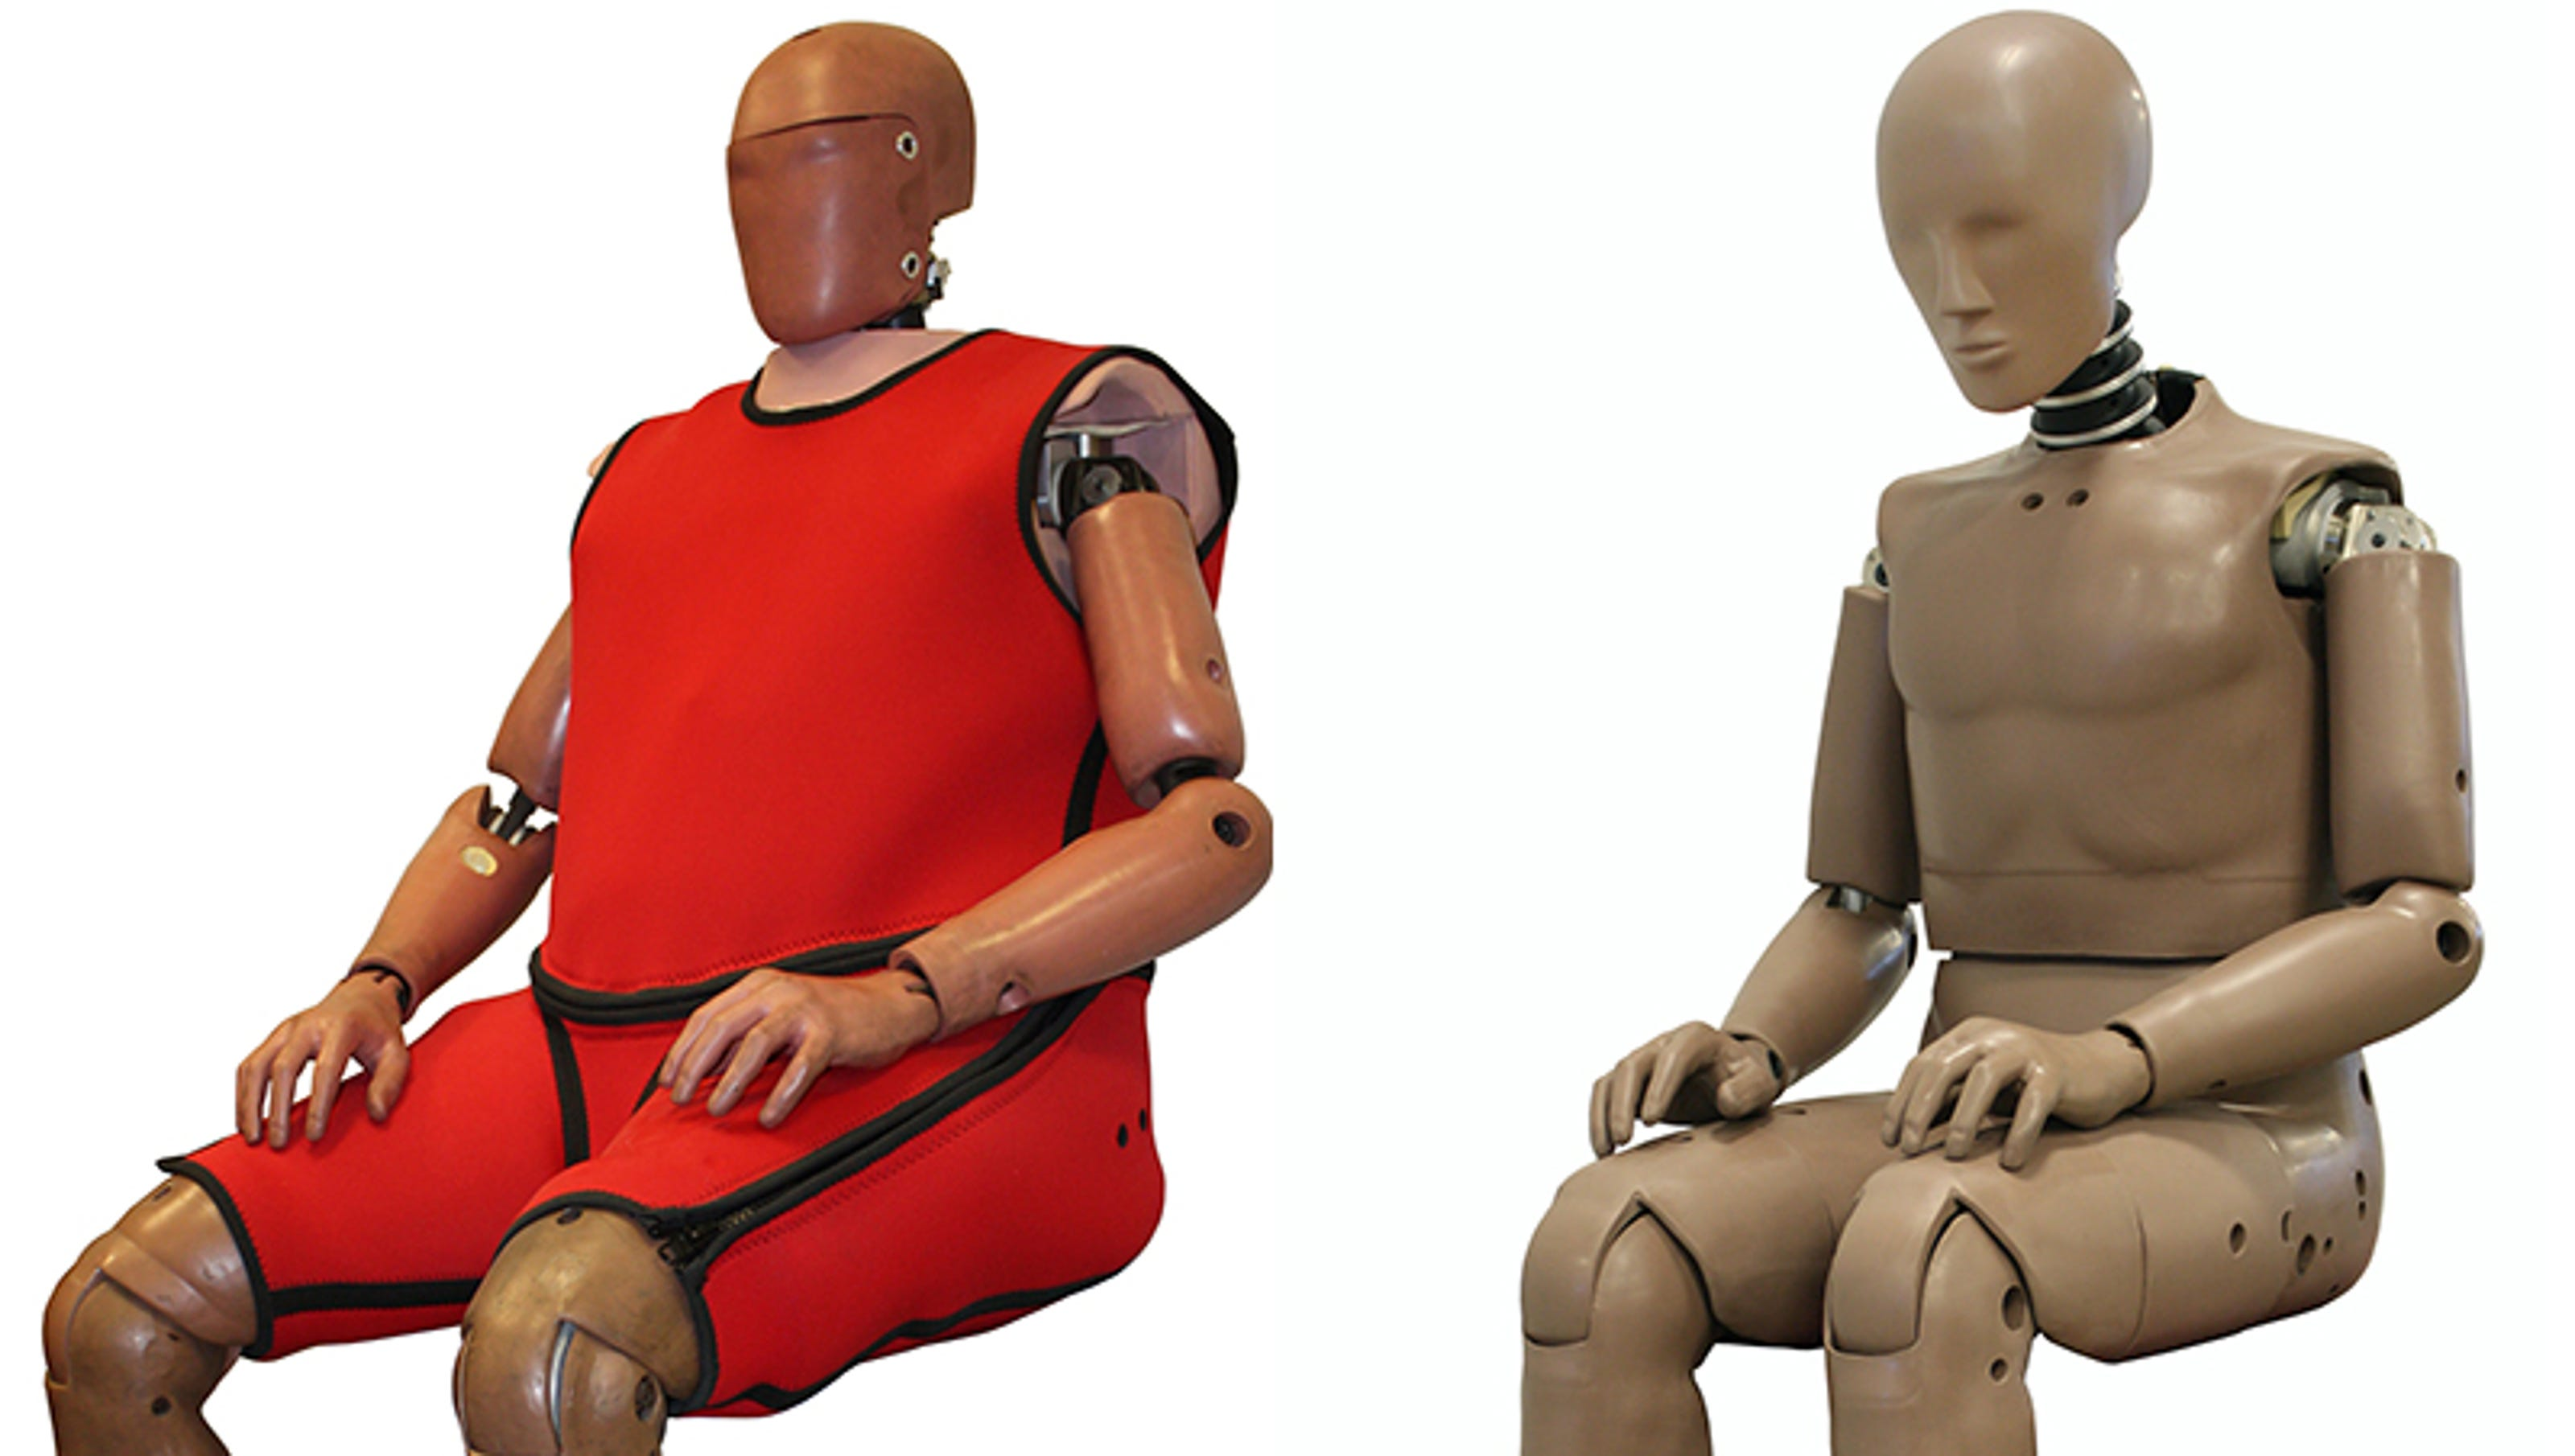 Michigan Based Firm Unveils Obese Crash Test Dummy